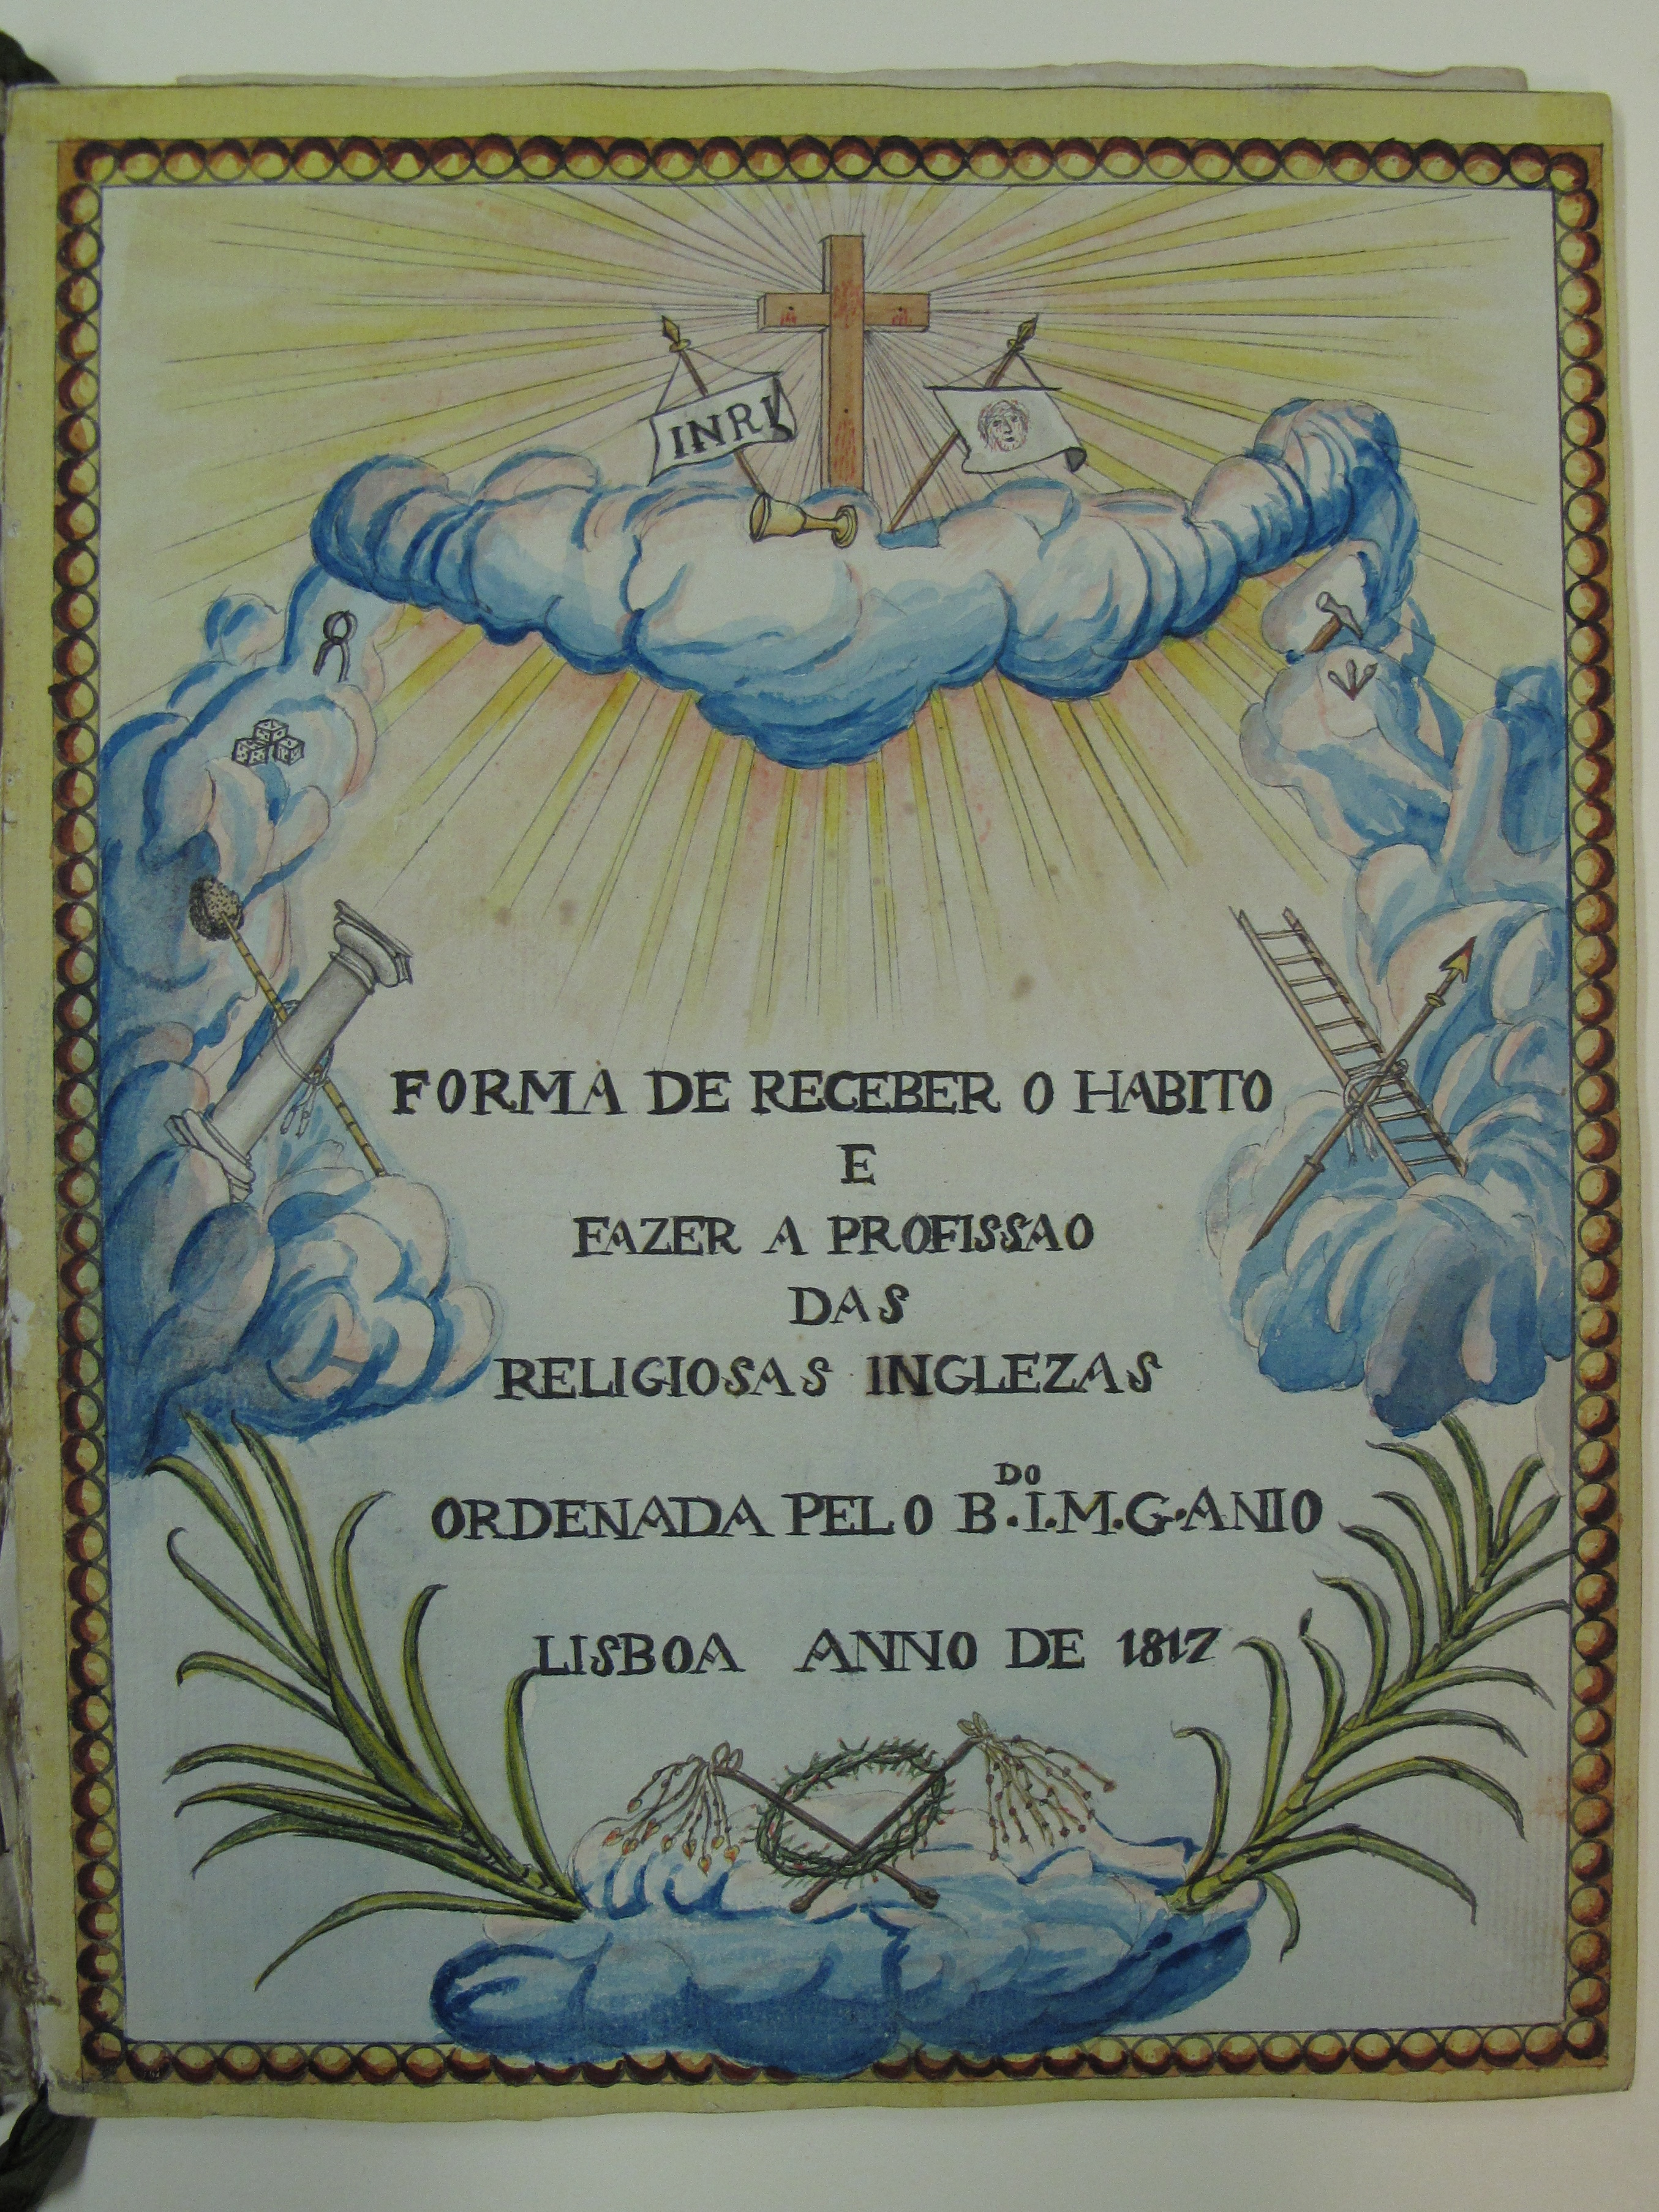 Title page of a manuscript in Portuguese and Latin, concerning the ceremonies of receiving the habit and profession (1817)